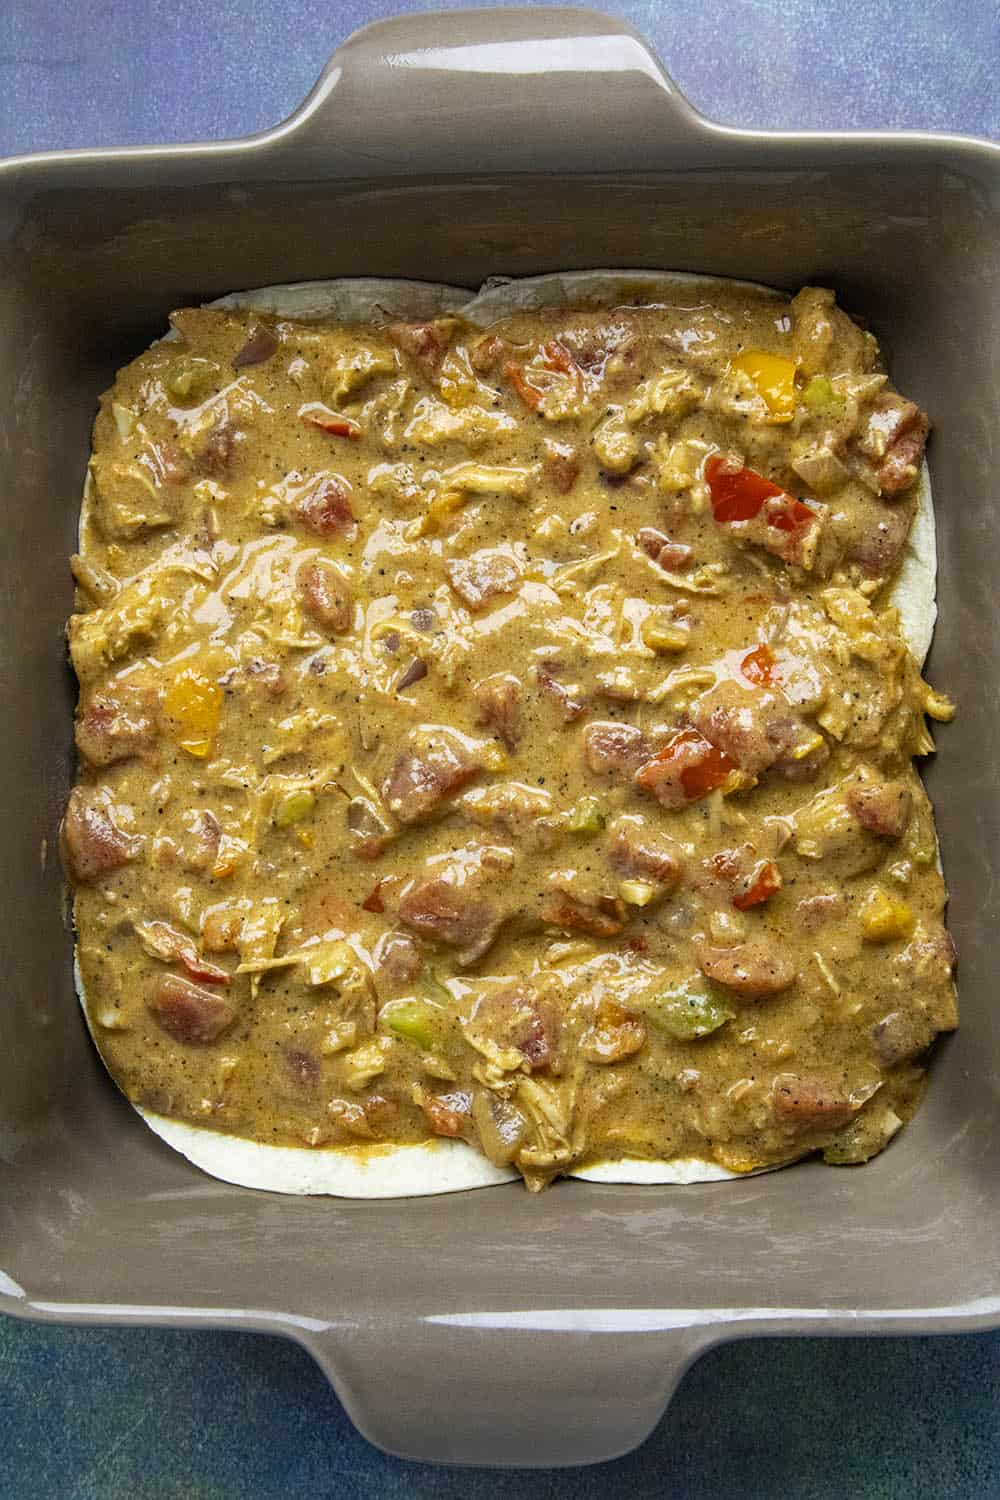 Layering in the filling of the King Ranch Casserole